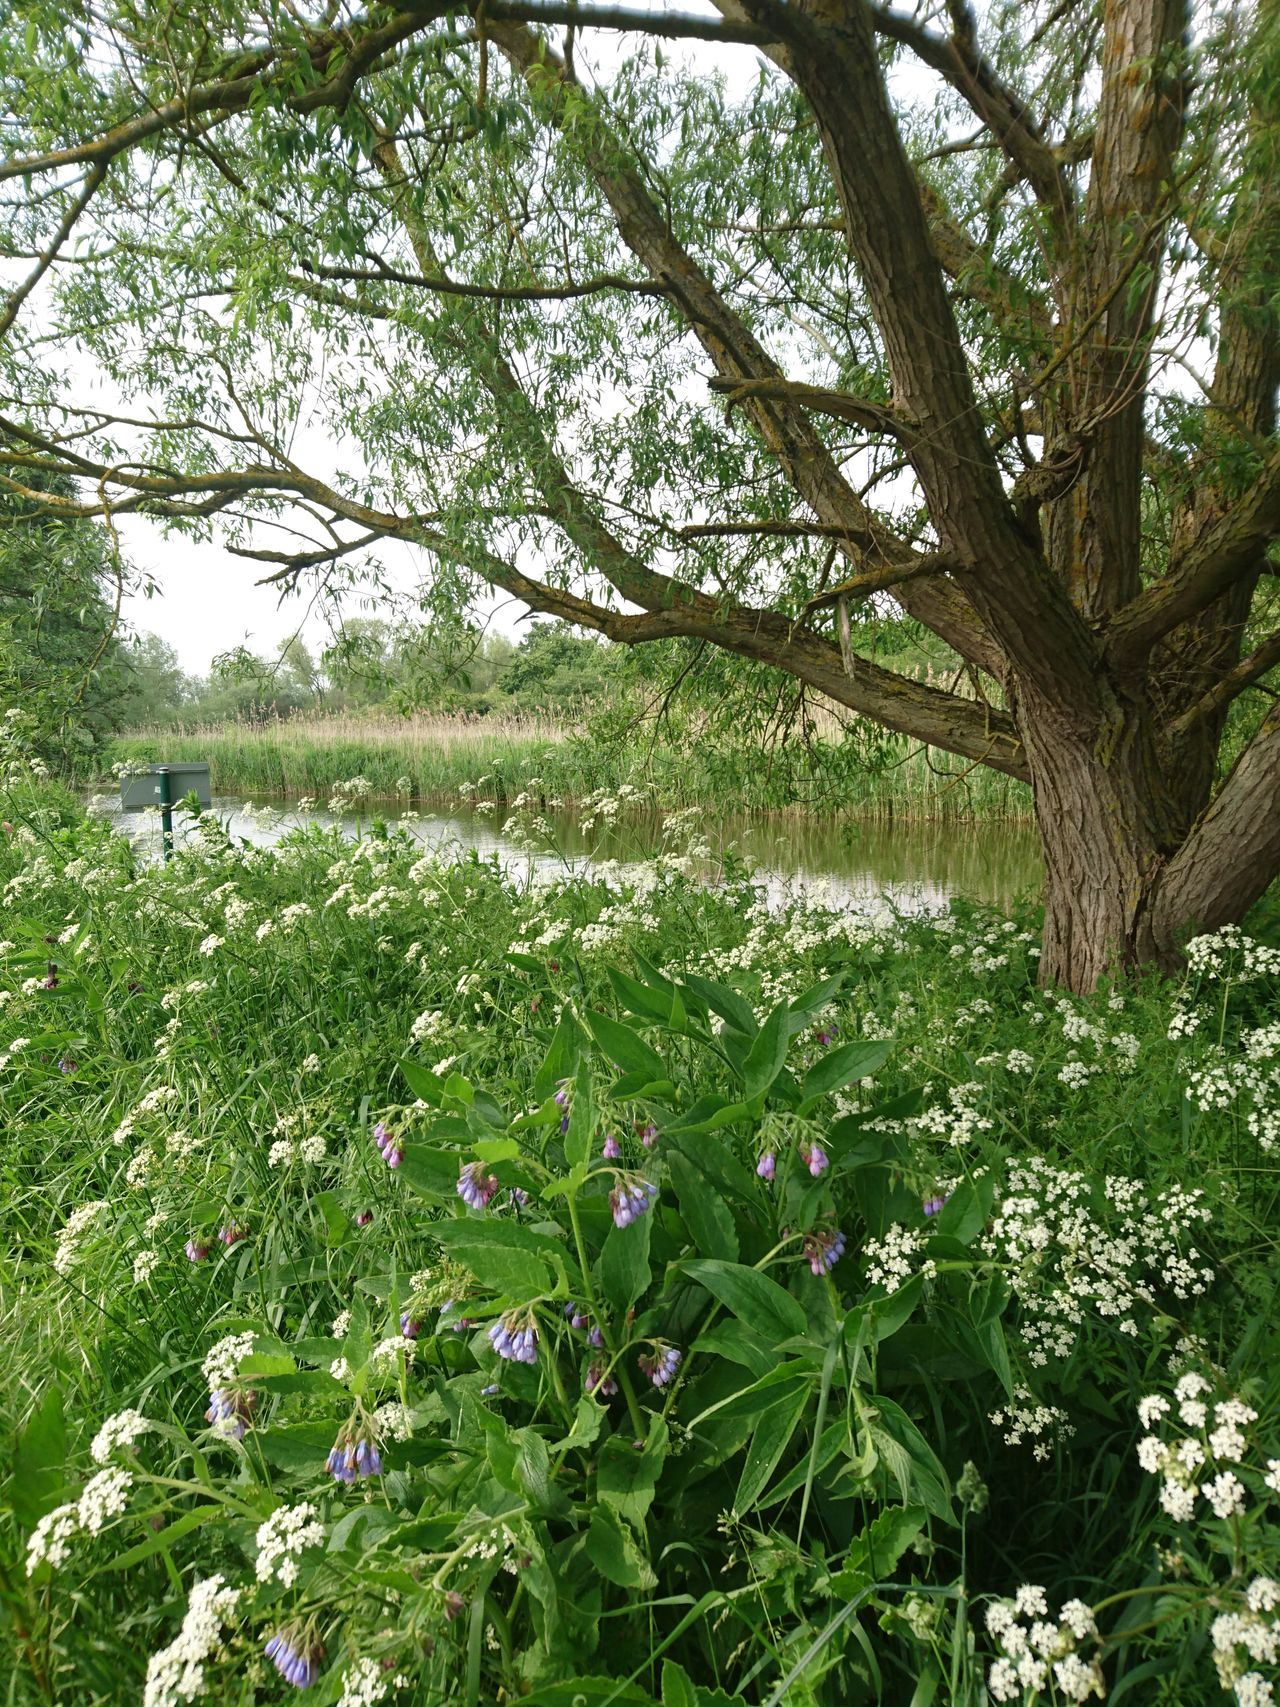 Beauty In Nature Blooming Blossom Constablecountry Day Essex Field Flatford Mill Flower Fragility Freshness Grass Green Color Growth Nature No People Outdoors Plant River River Stour Stour Suffolk Tranquil Scene Tranquility Tree